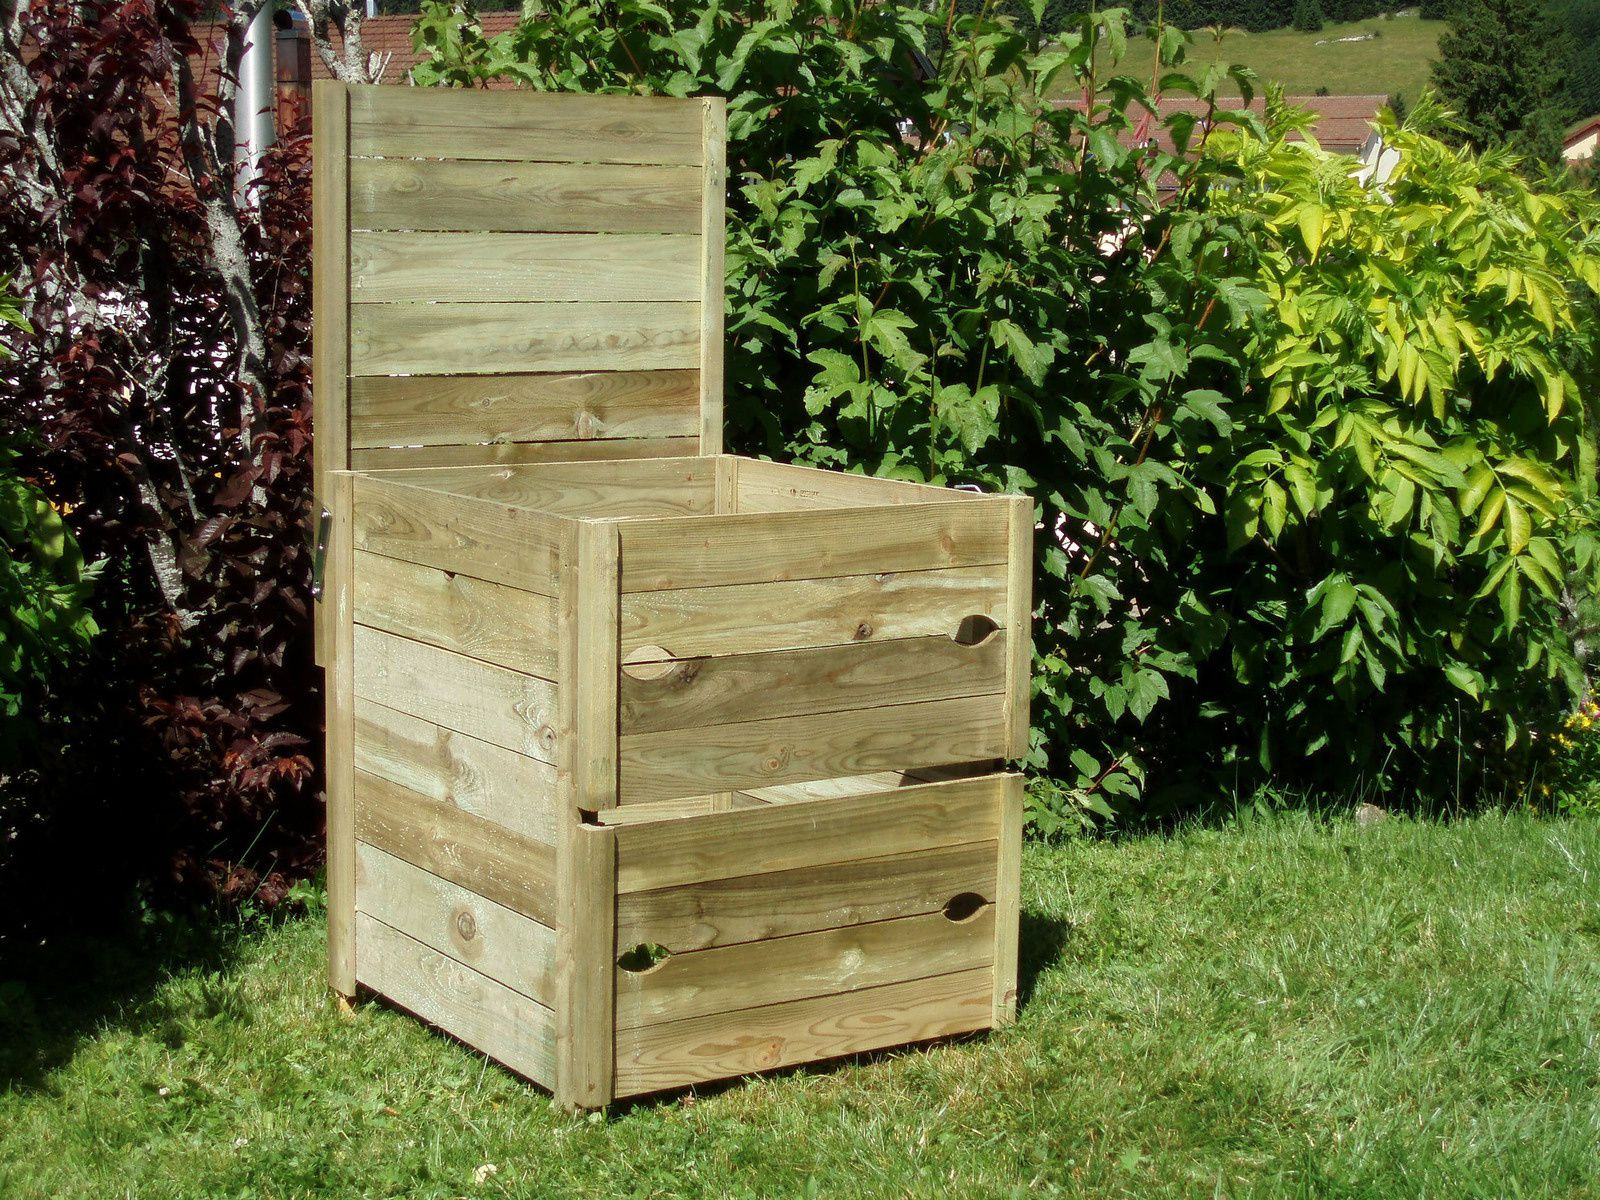 sud messin composter pour r duire ses d chets info locale metz pays messin. Black Bedroom Furniture Sets. Home Design Ideas